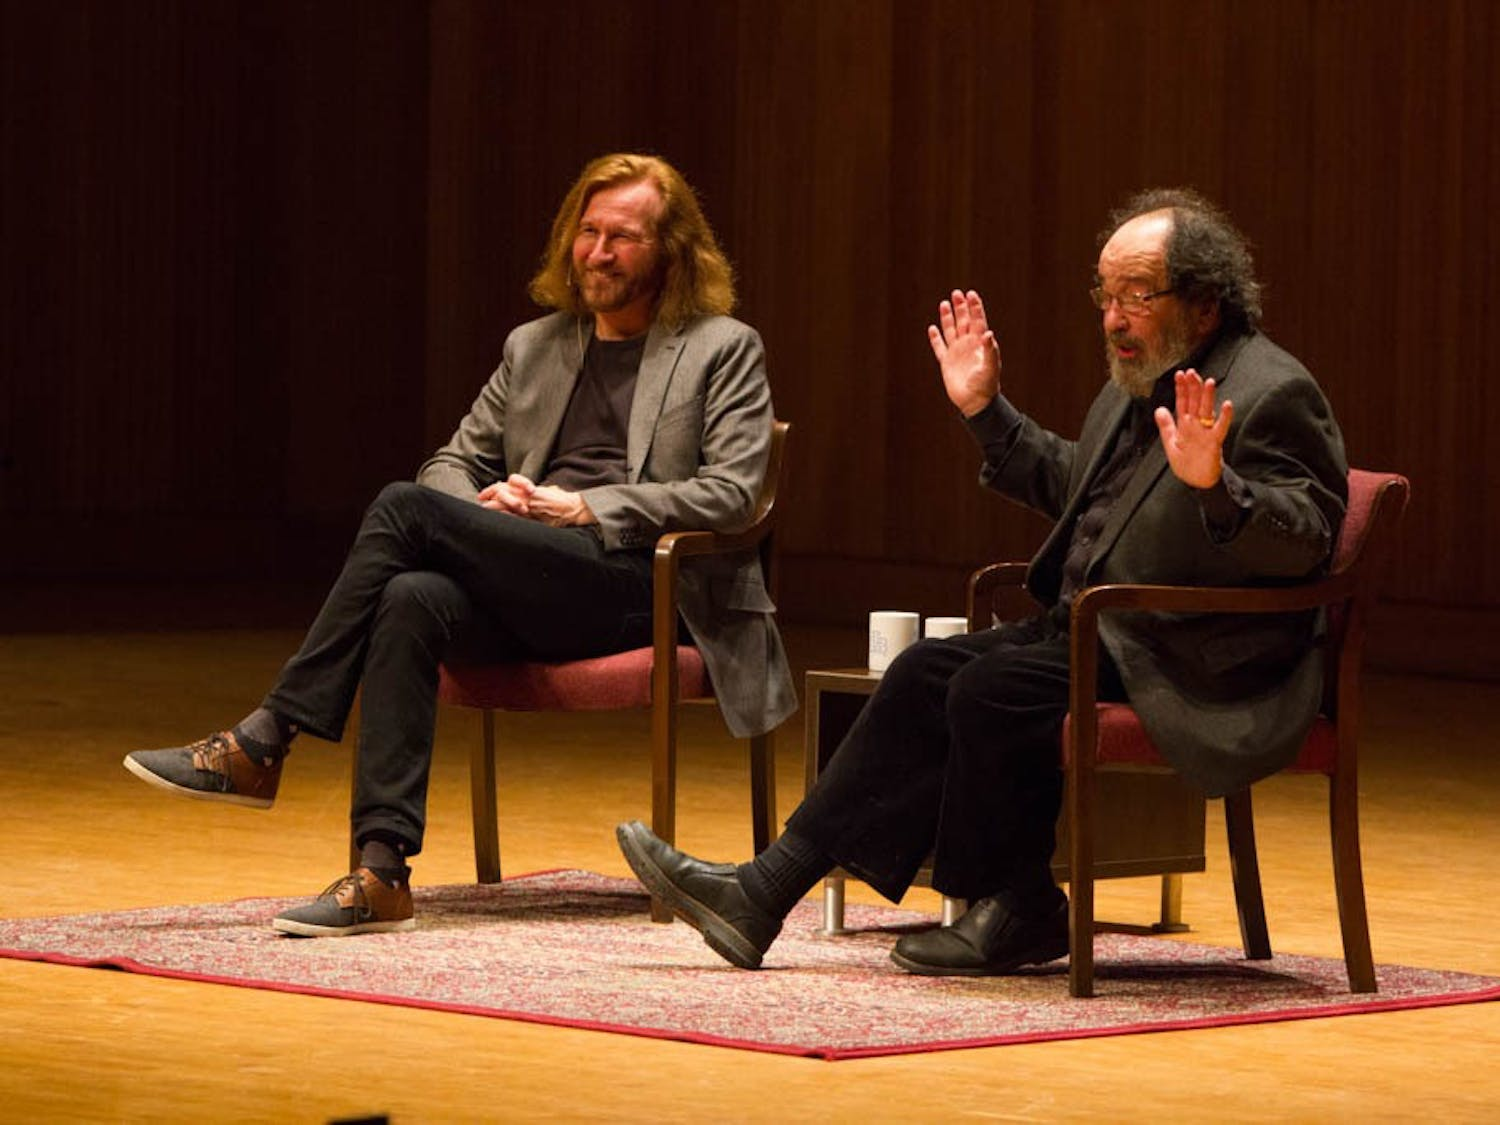 Tom Toles (left) speaks with his friend and SUNY Buffalo Arts initiative co-director Bruce Jackson (right) at Slee Hall on April 14, 2016.